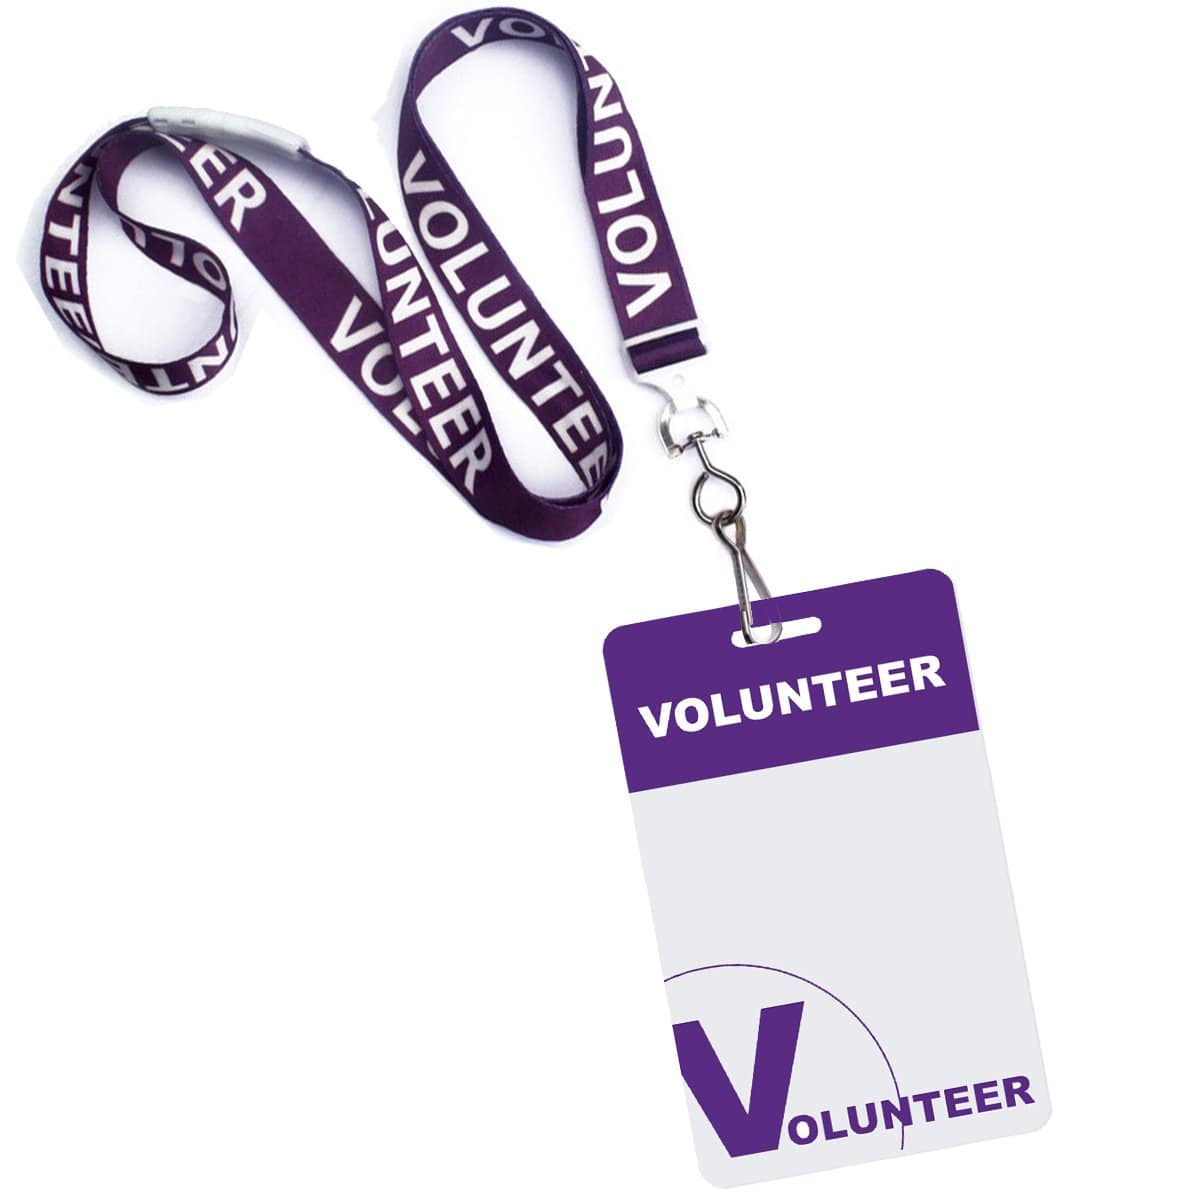 10 Pack - Volunteer Lanyard with Badge Set - Pre-Printed Volunteer Design - Dual Sided, Purple